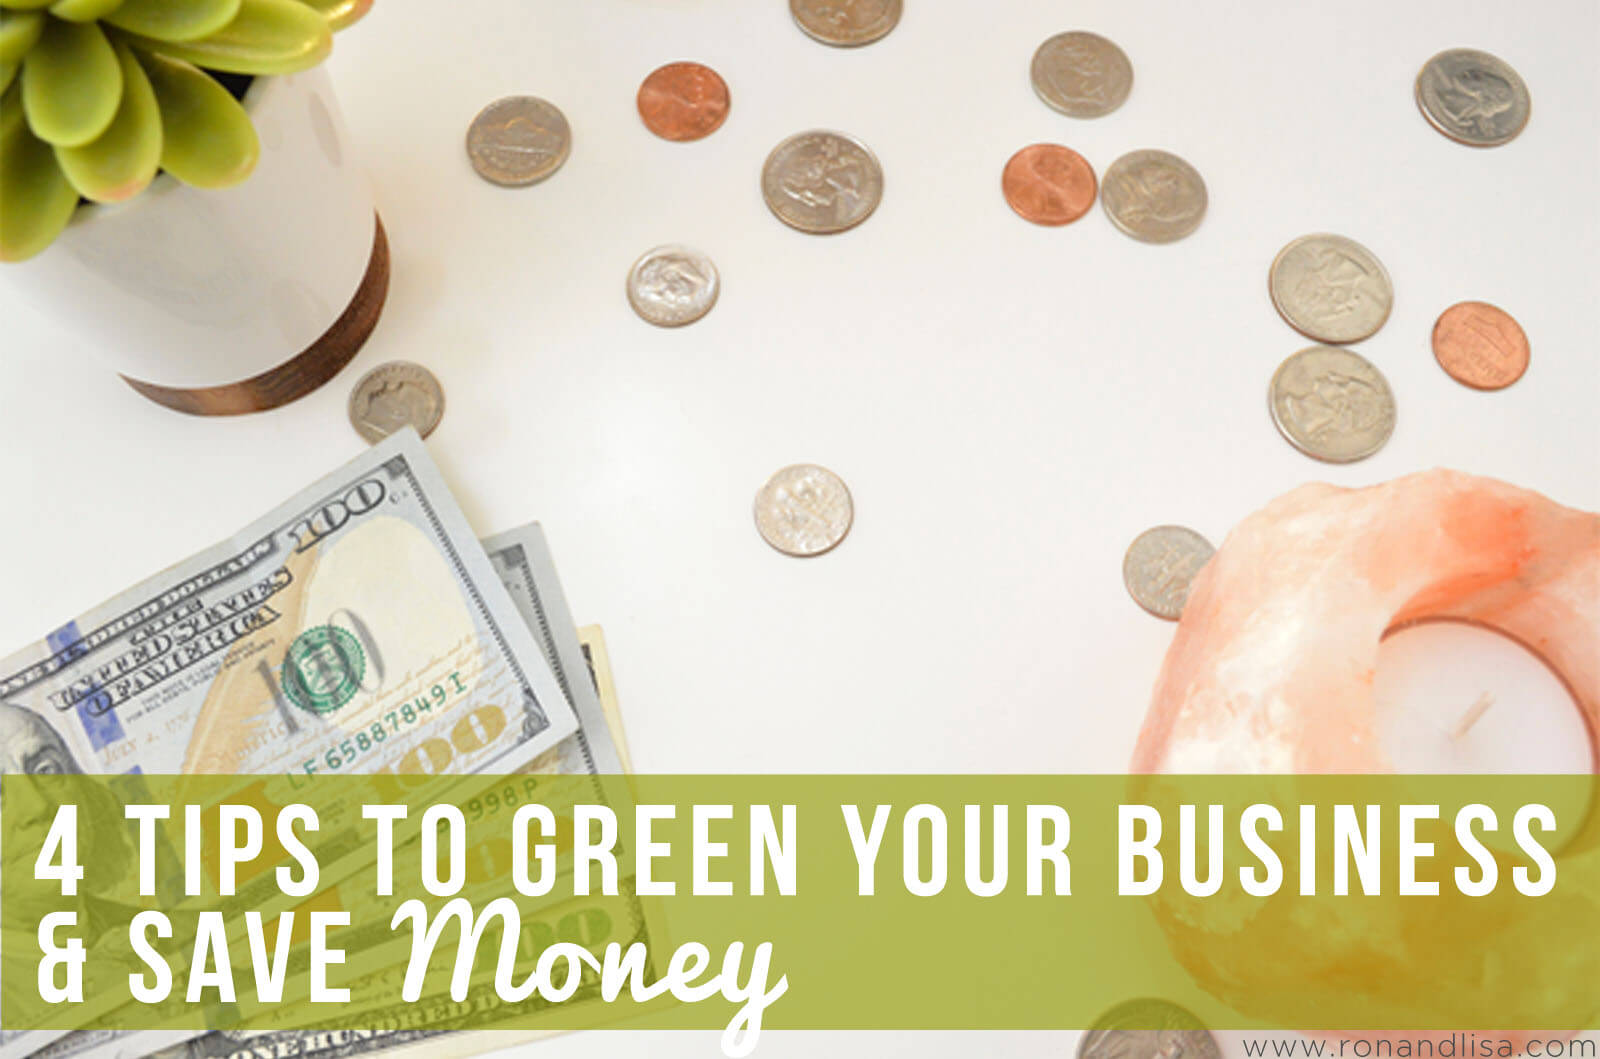 4 Tips to Green Your Business & Save Money